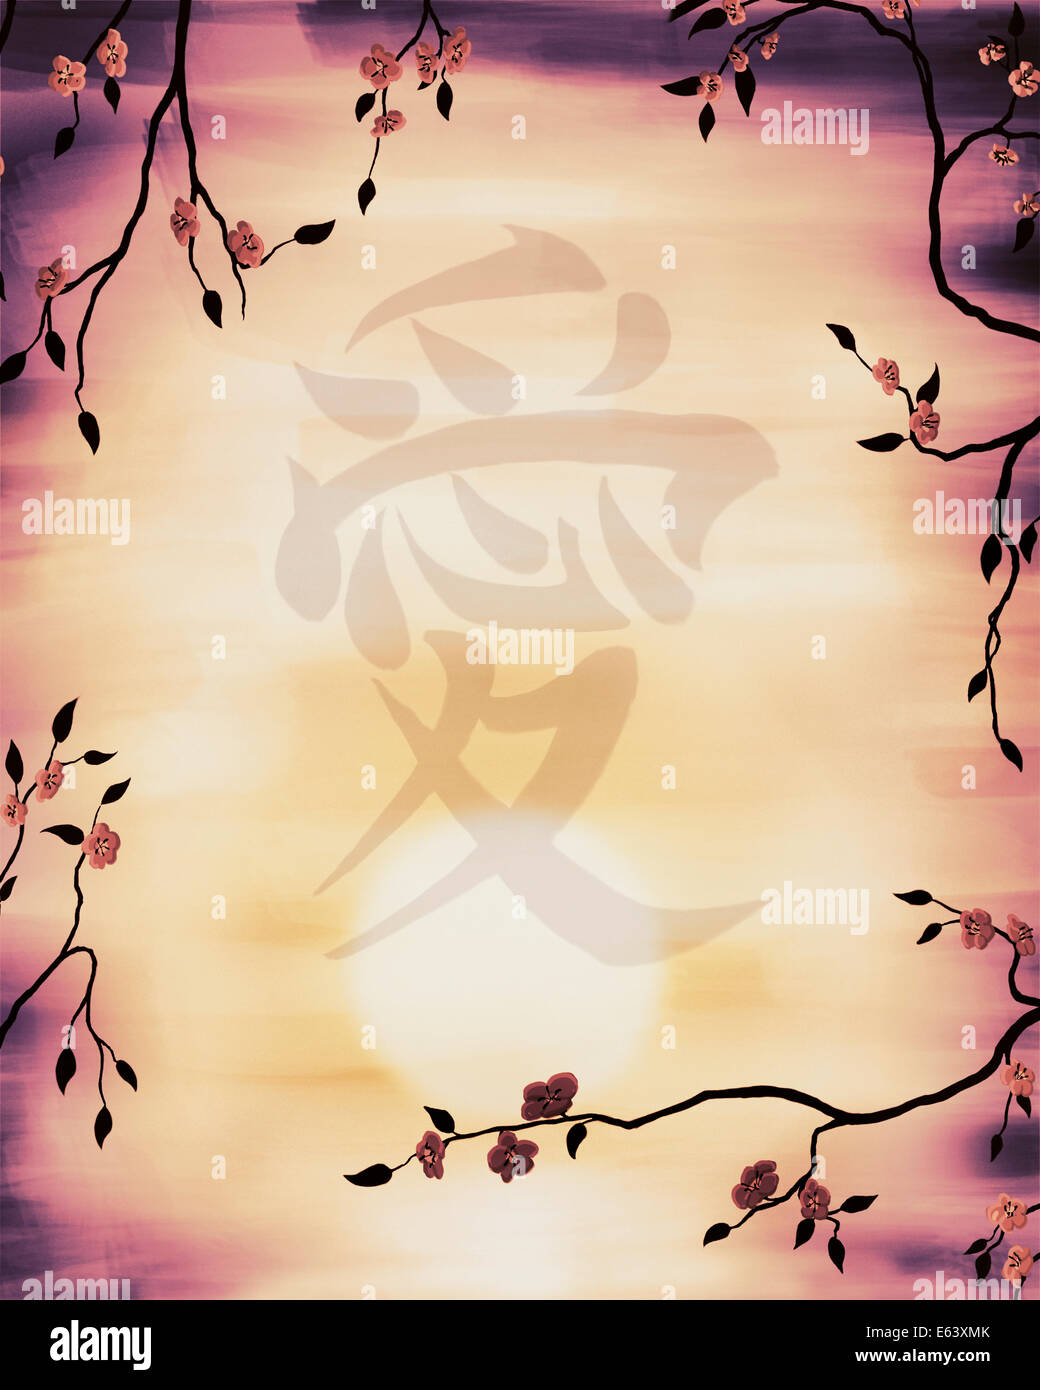 Artistic illustration of a Japanese character Ai, meaning Love on sakura cherry blossom sunrise scenery background - Stock Image